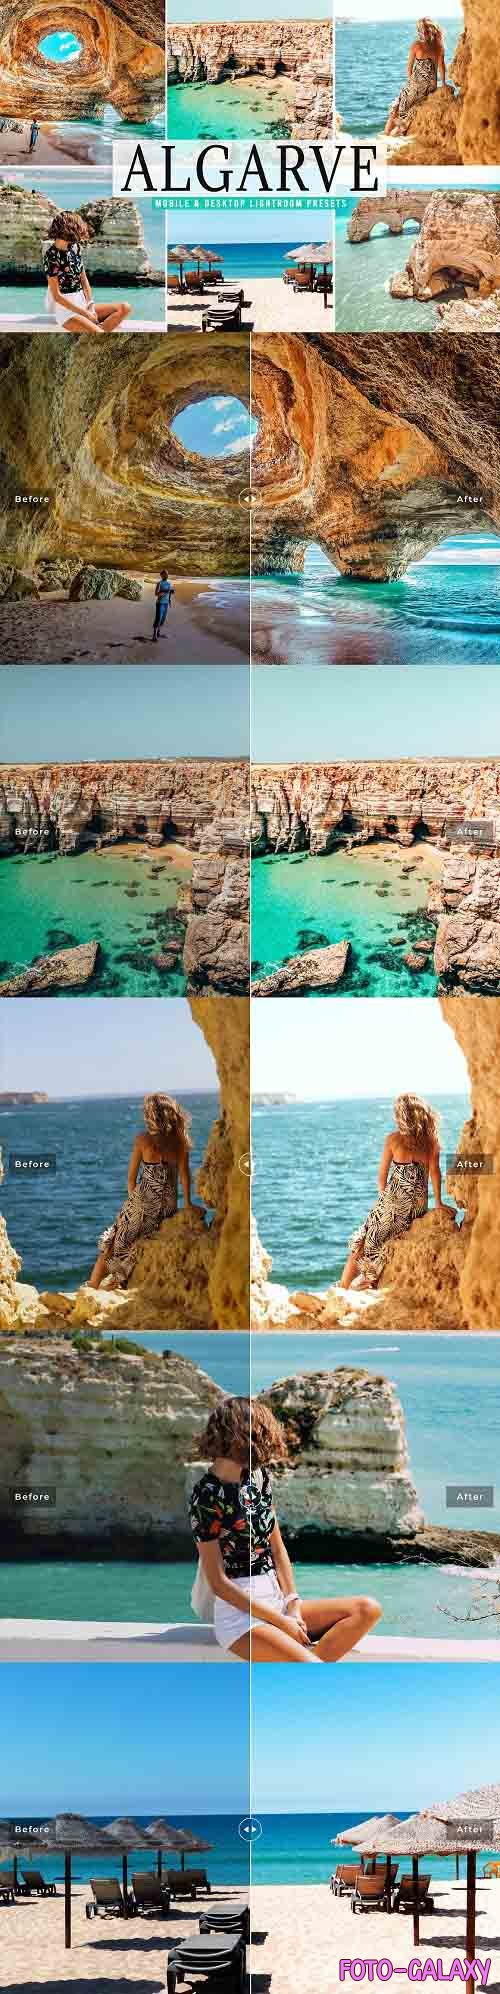 Algarve Pro Lightroom Presets - 5669663 - Mobile & Desktop